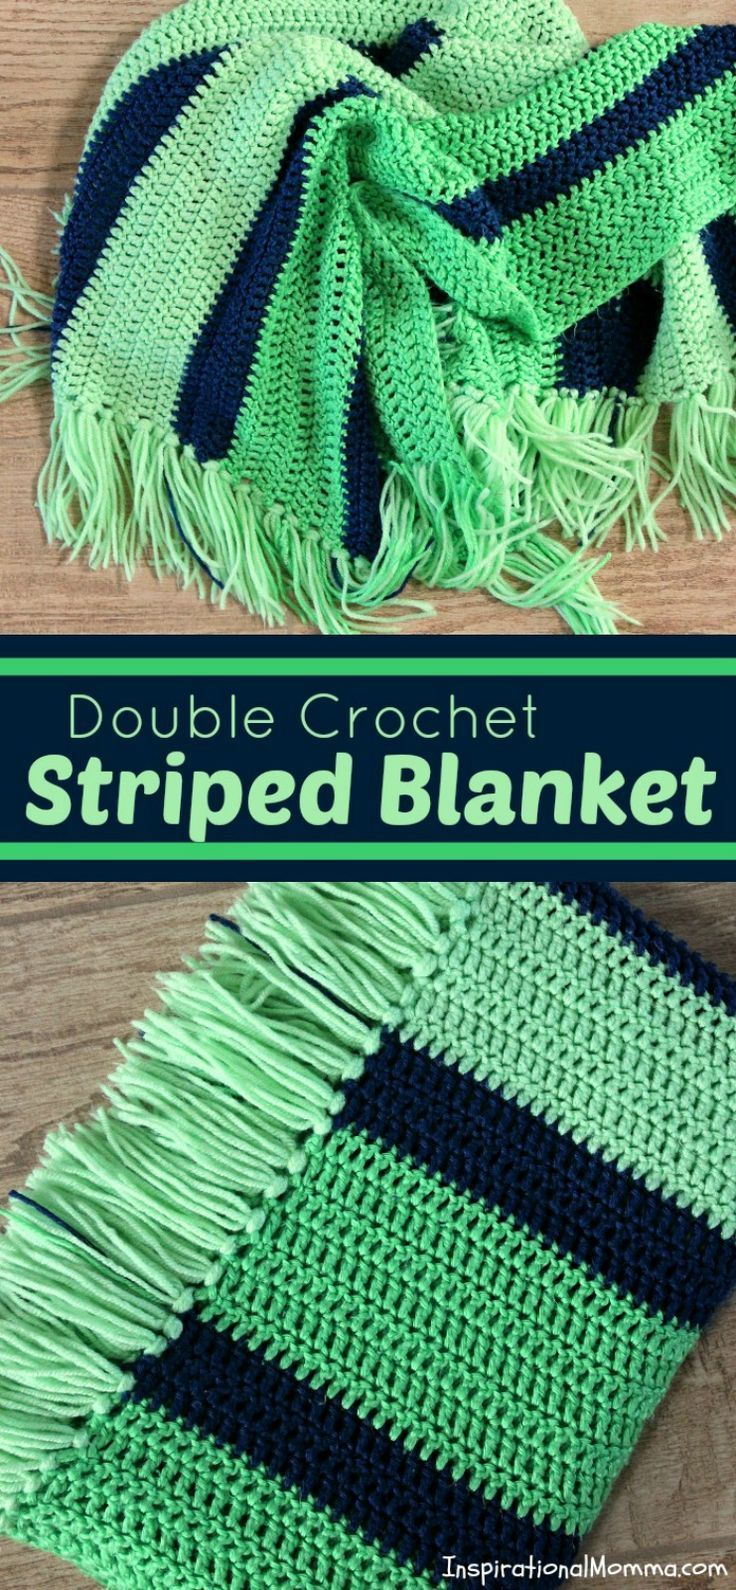 Double Crochet Striped Blanket By Tanille - Free Crochet Pattern - (inspirationalmomma)